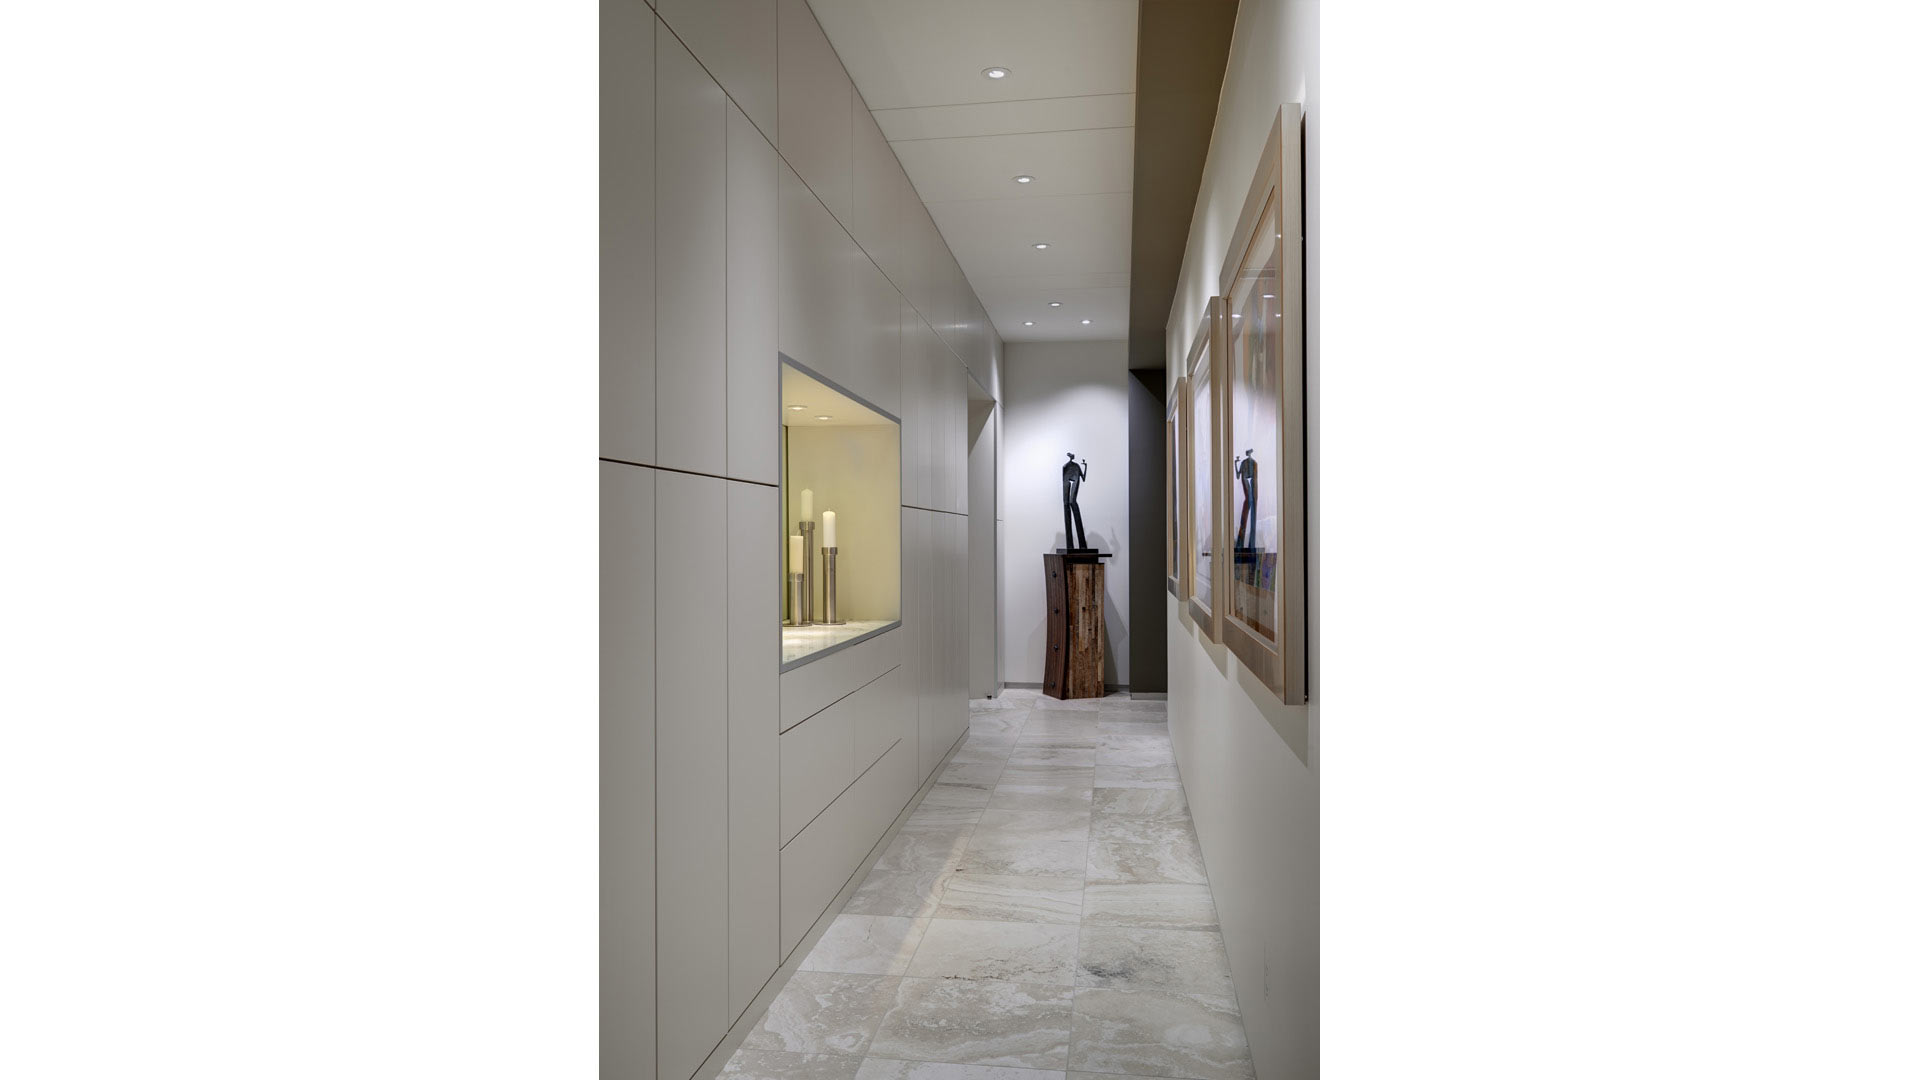 Adagio Penthouse Interior - Sculpture Gallery Hallway - HAUS Architecture, Christopher Short, Indianapolis Architect